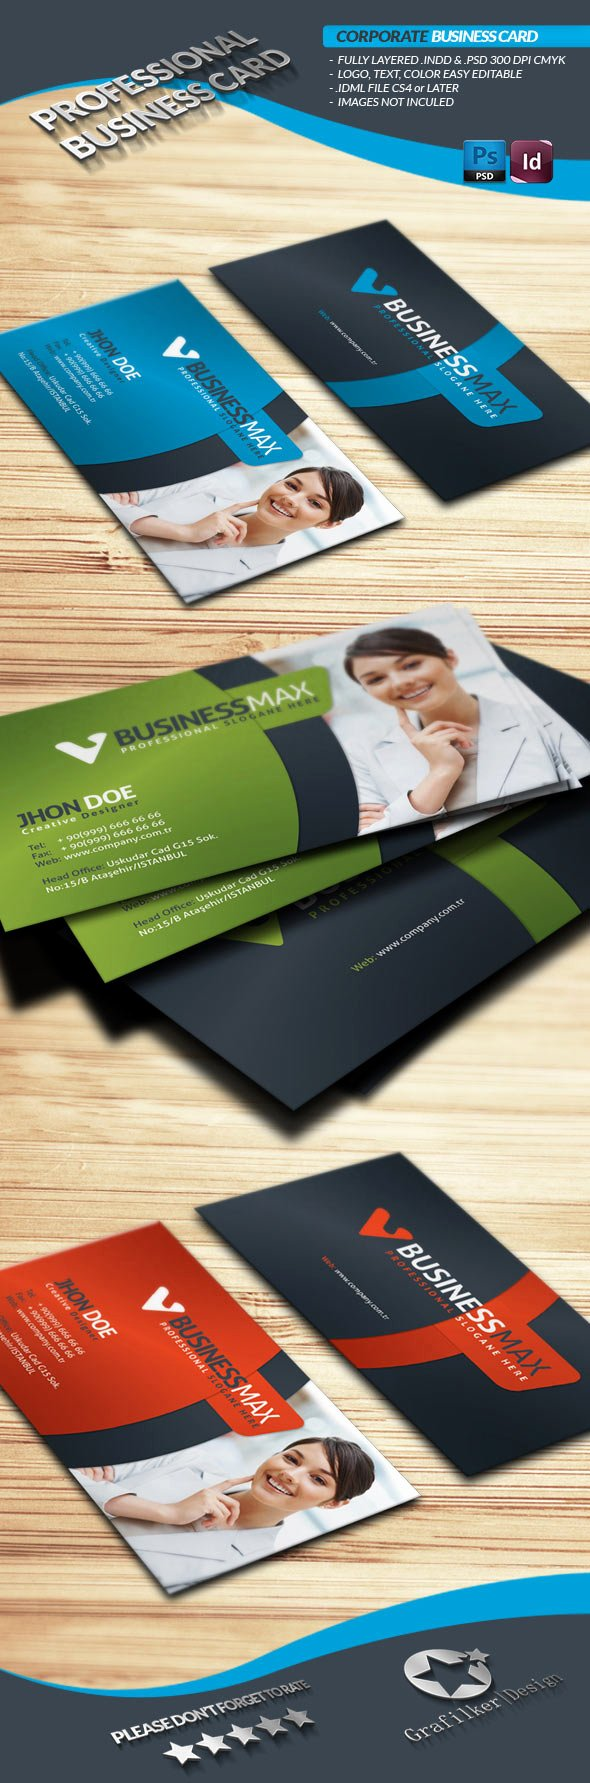 Indesign Business Card Template Free Fresh 15 Premium Business Card Templates In Shop